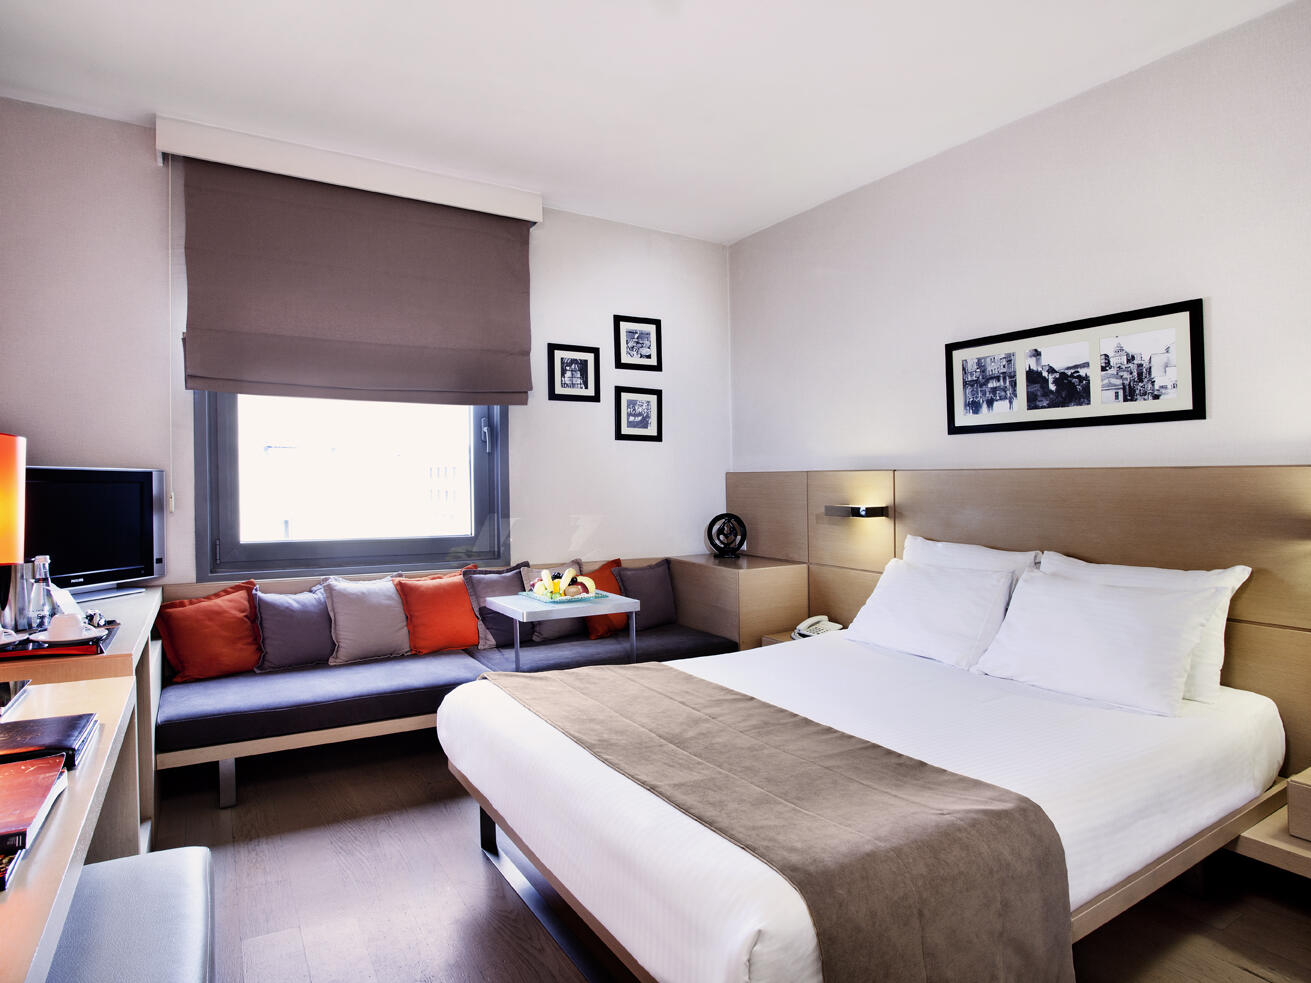 Bed room with a large window at Eresin taxim premier.